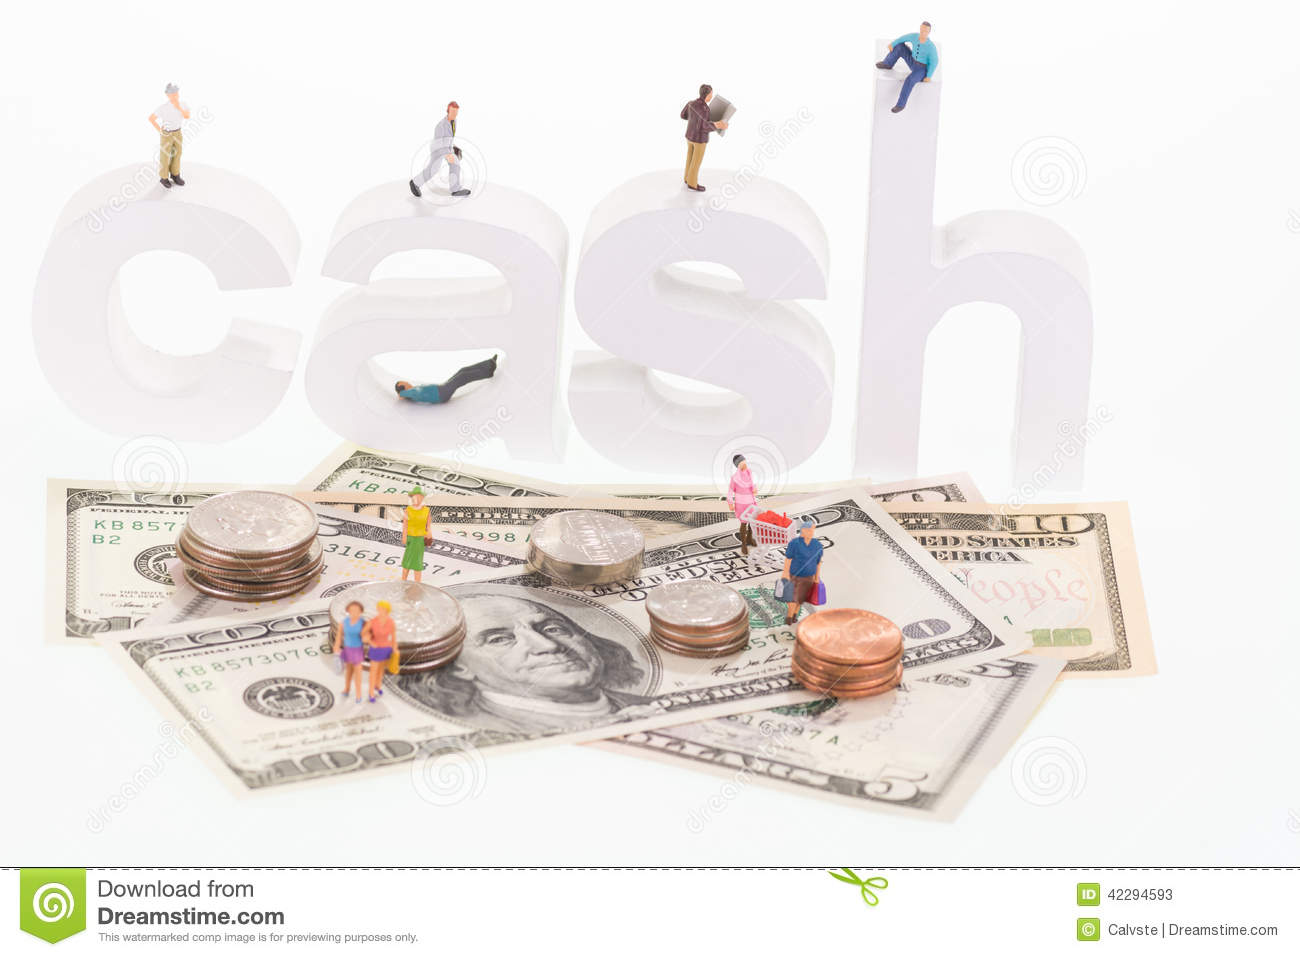 Miniature people on cash wooden letters and US banknotes